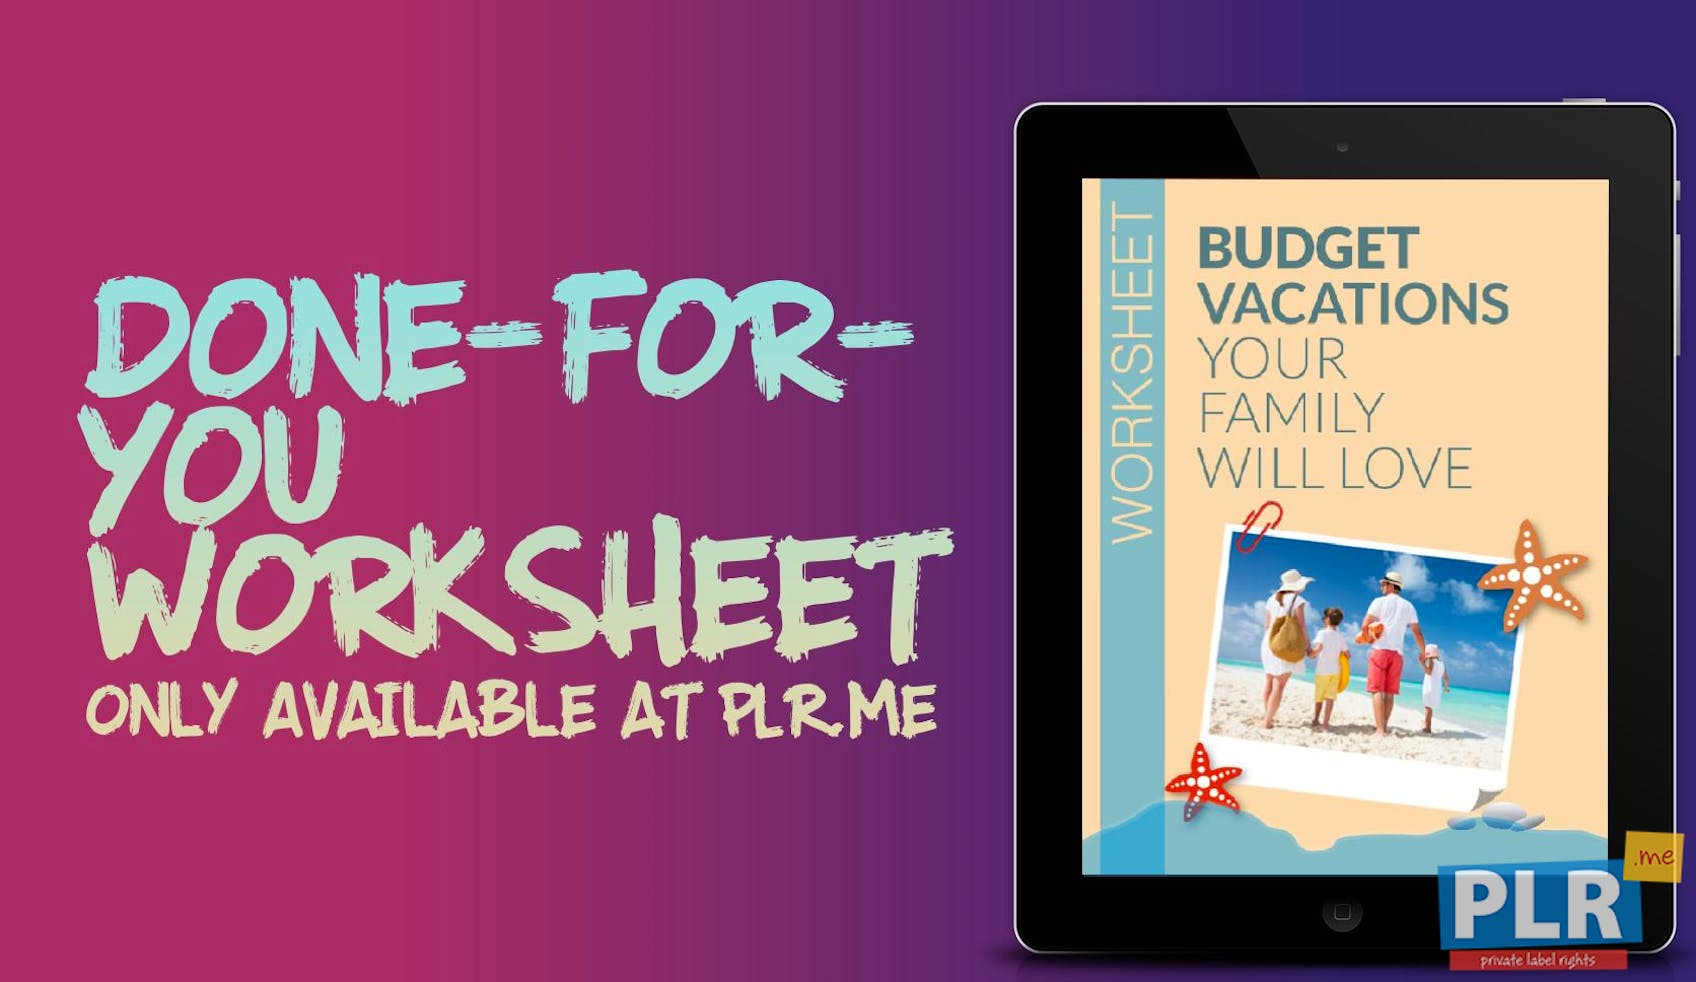 Budget Vacations Your Family Will Love Worksheet